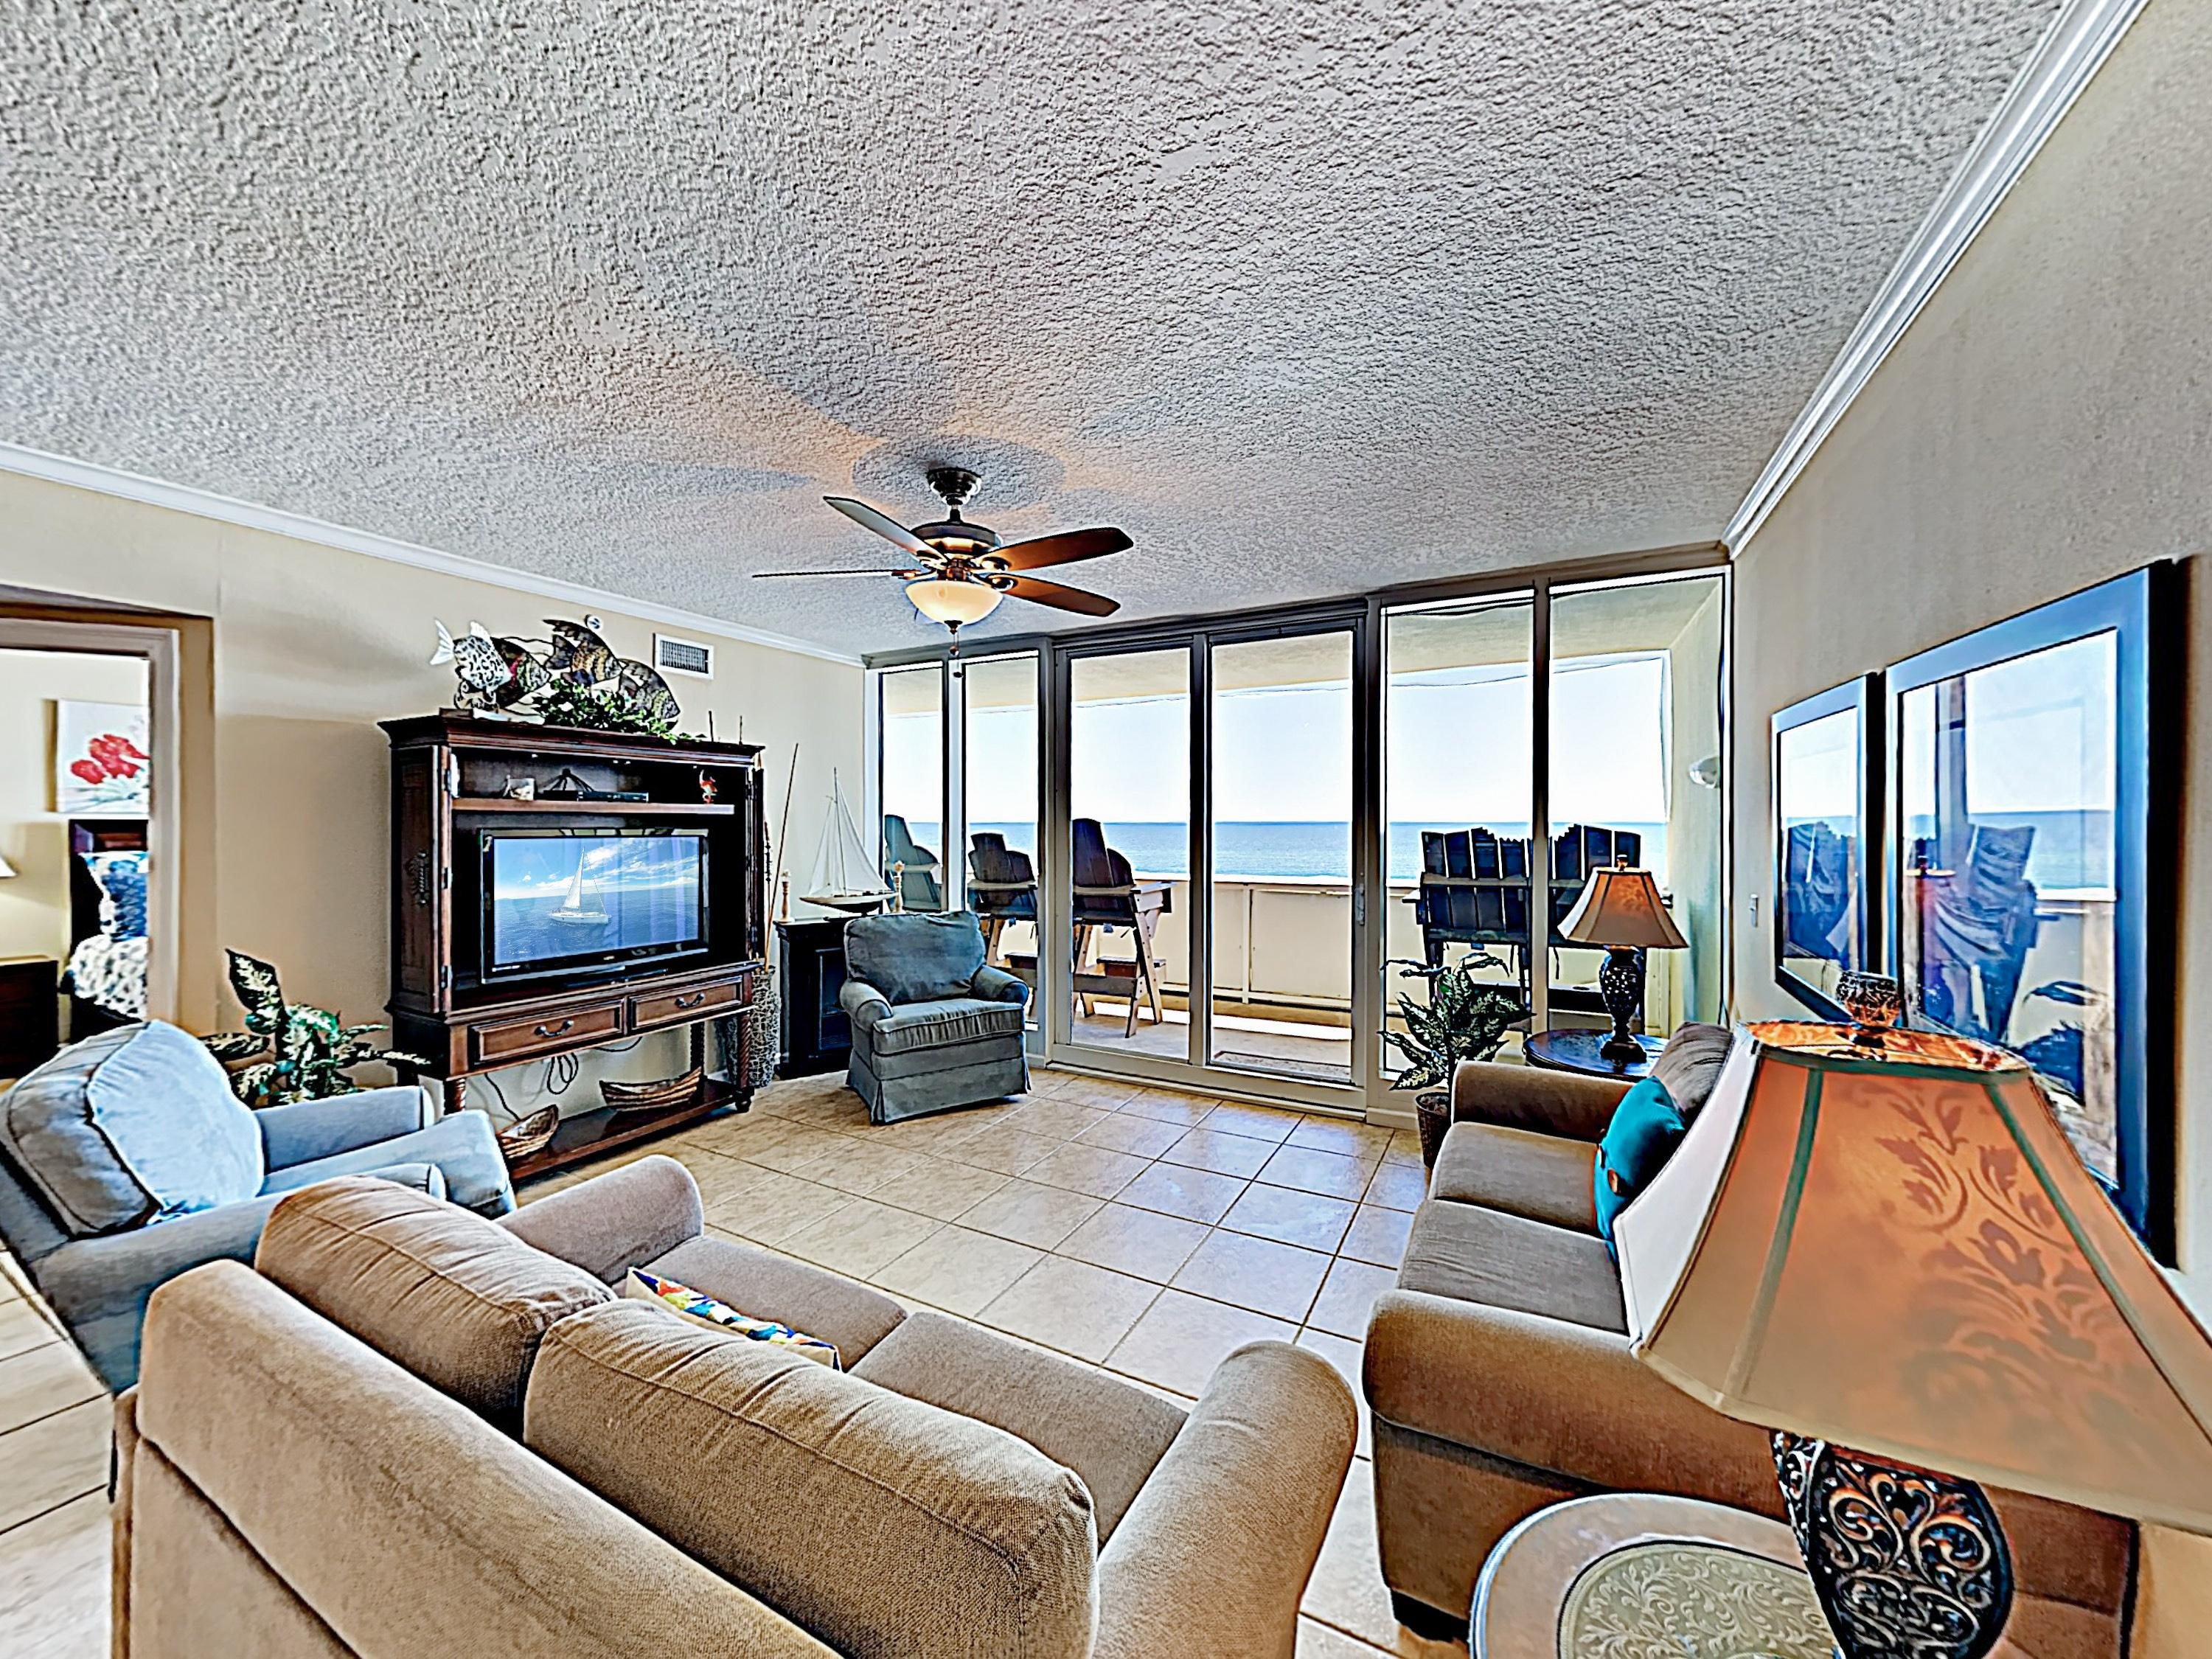 Welcome to Gulf Shores! This beachfront condo is professionally managed by TurnKey Vacation Rentals.